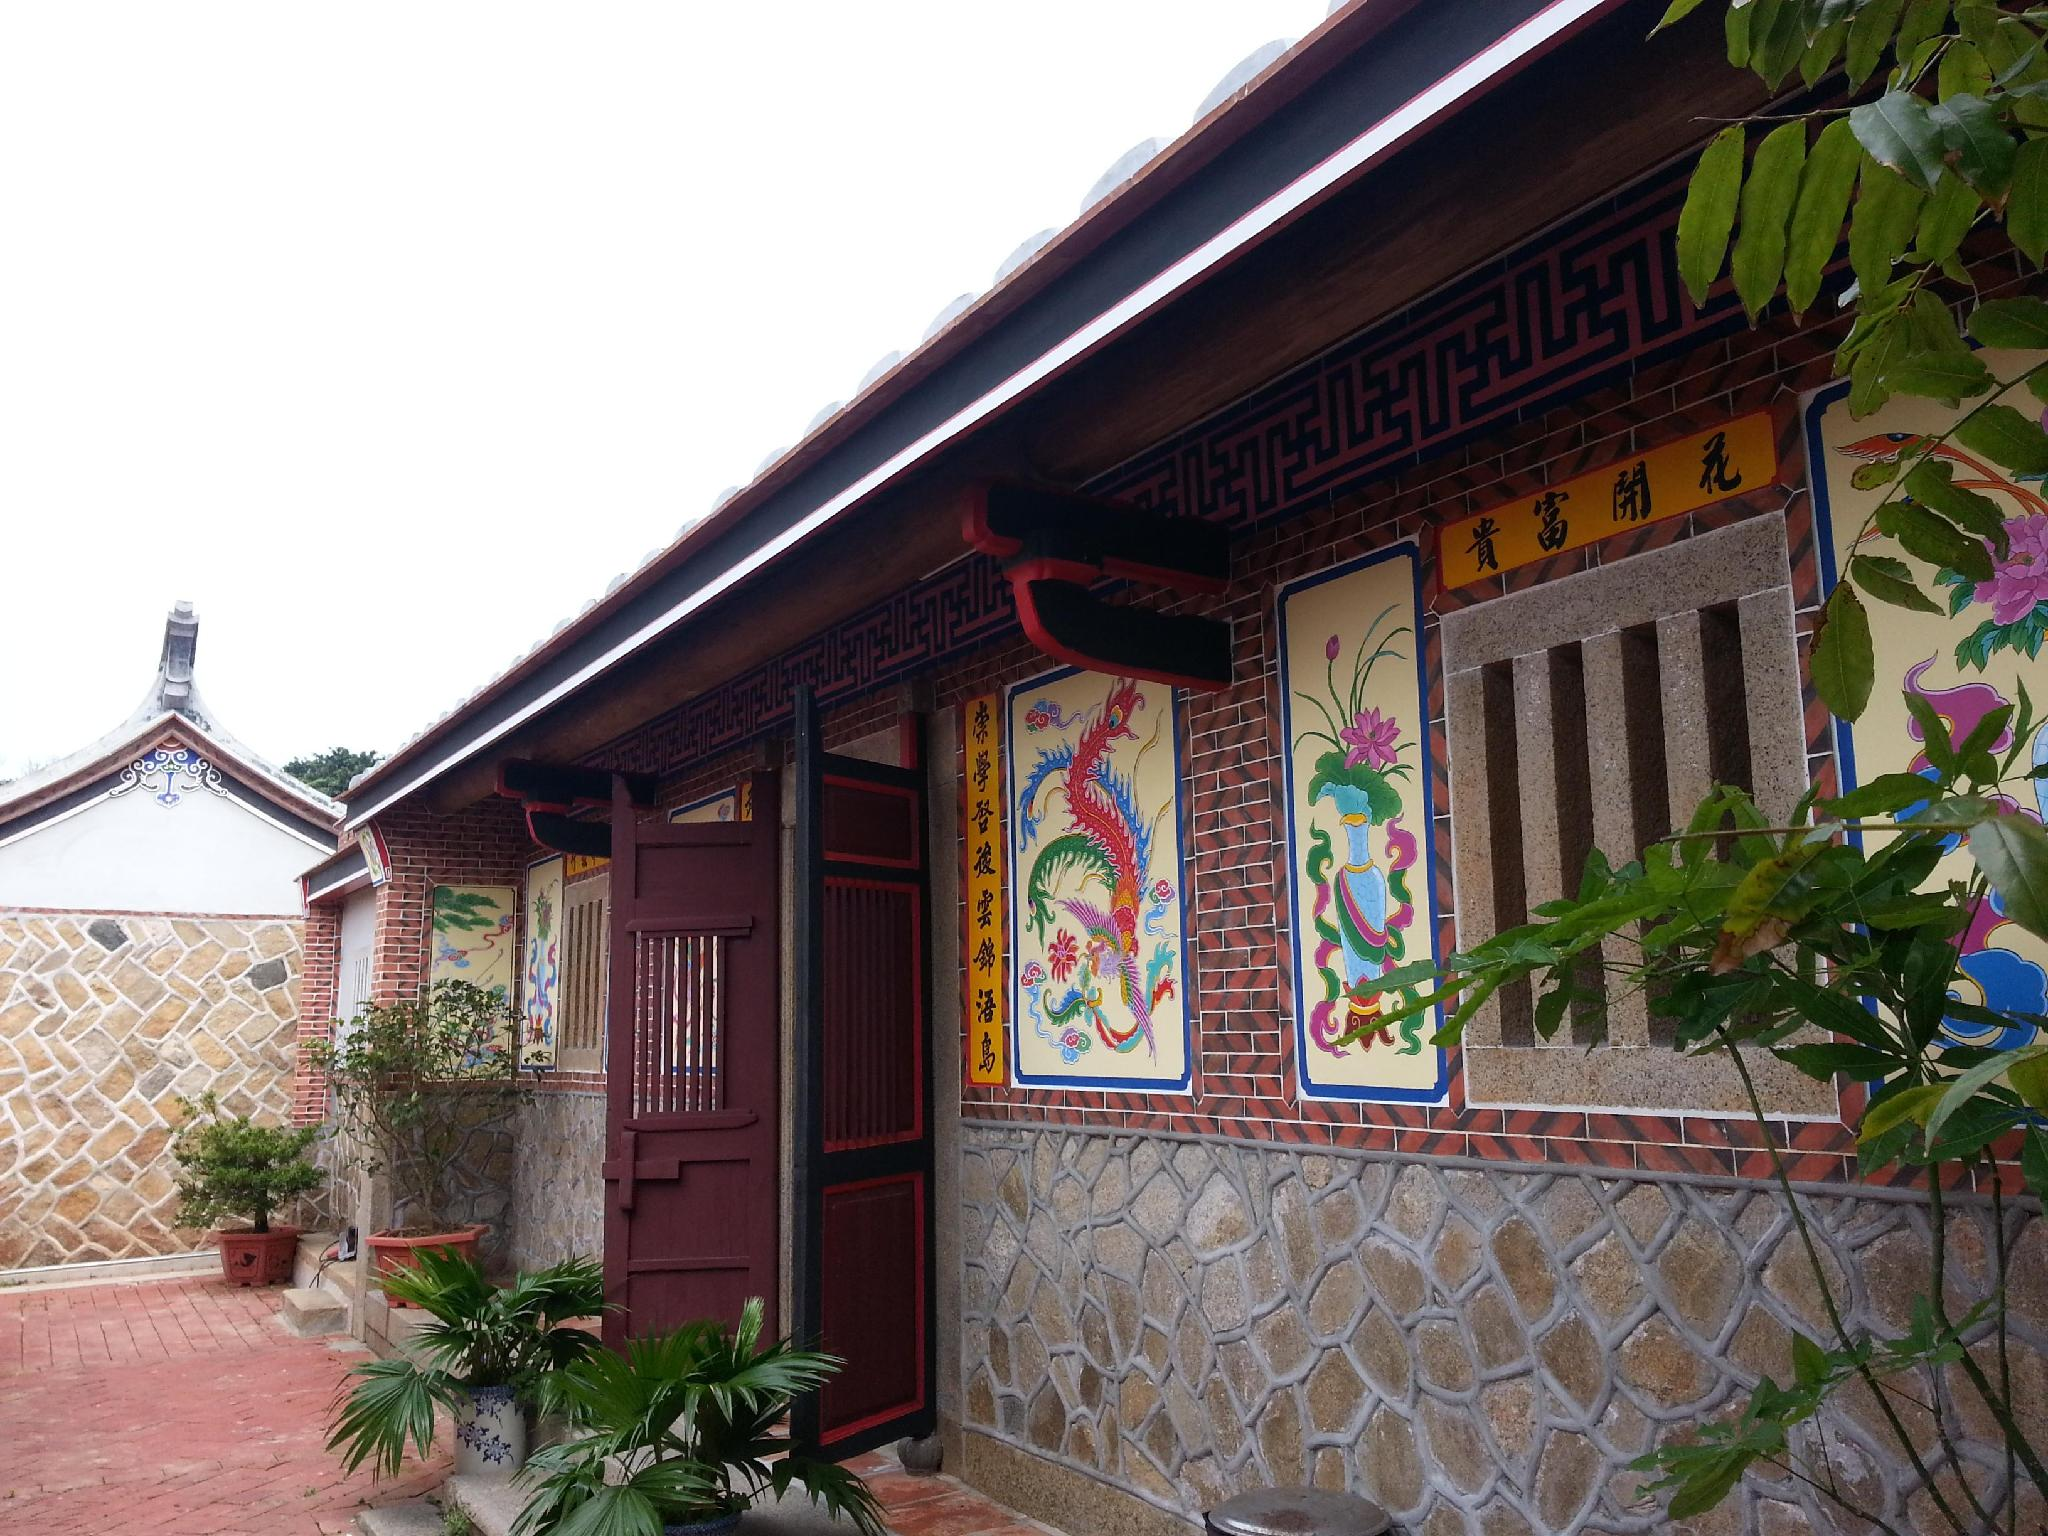 陶然居民宿 Lohas-19 B & B Lohas 19 Bed and Breakfast